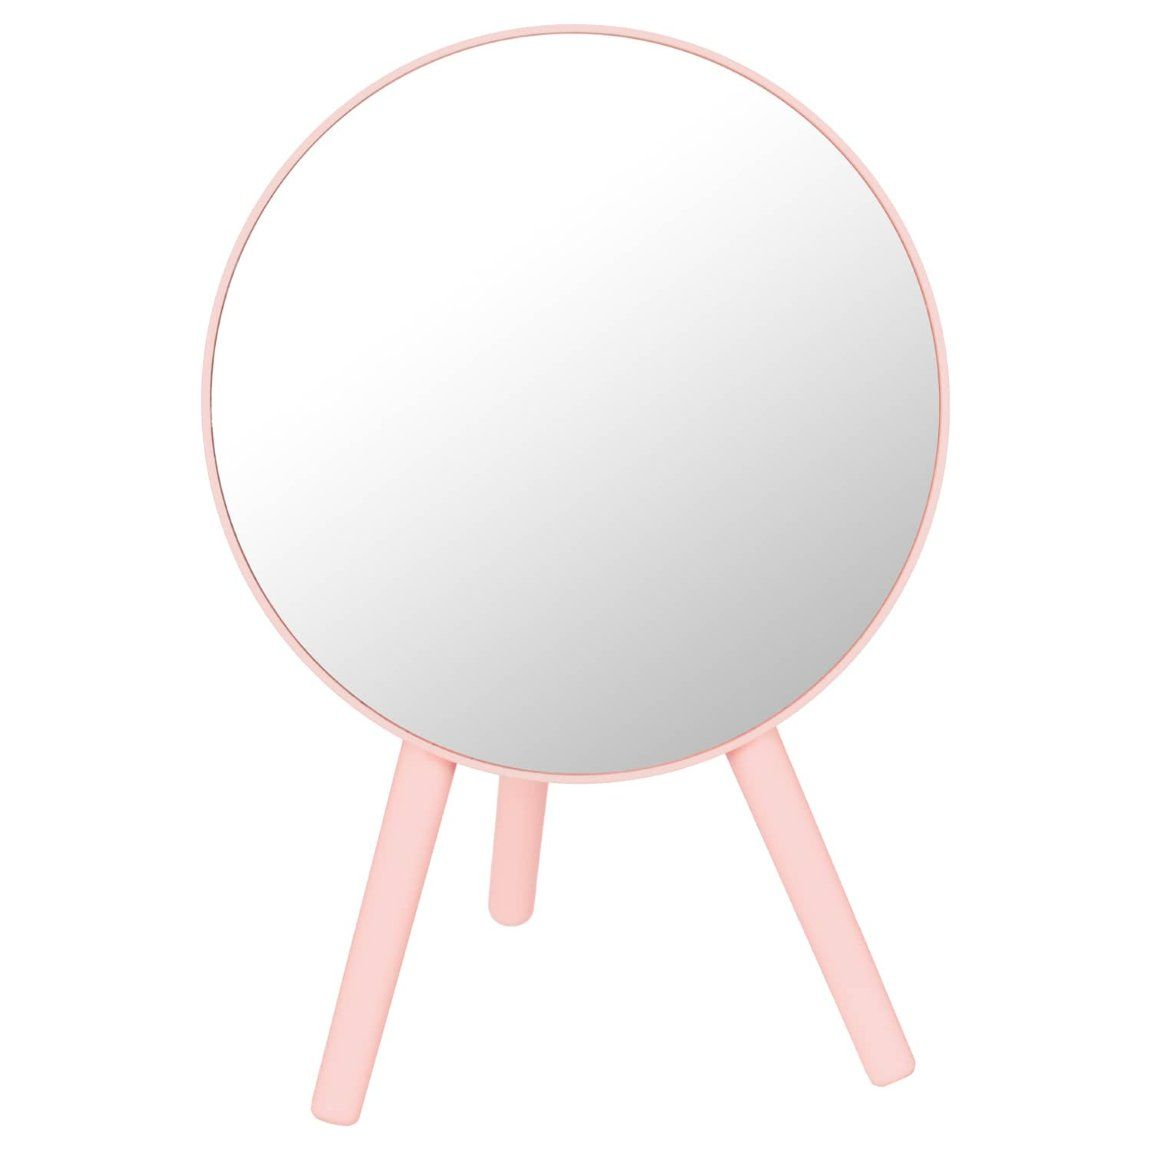 Rounded Free Standing Mirror Blush In 2020 Standing Mirror Mirror Free Standing